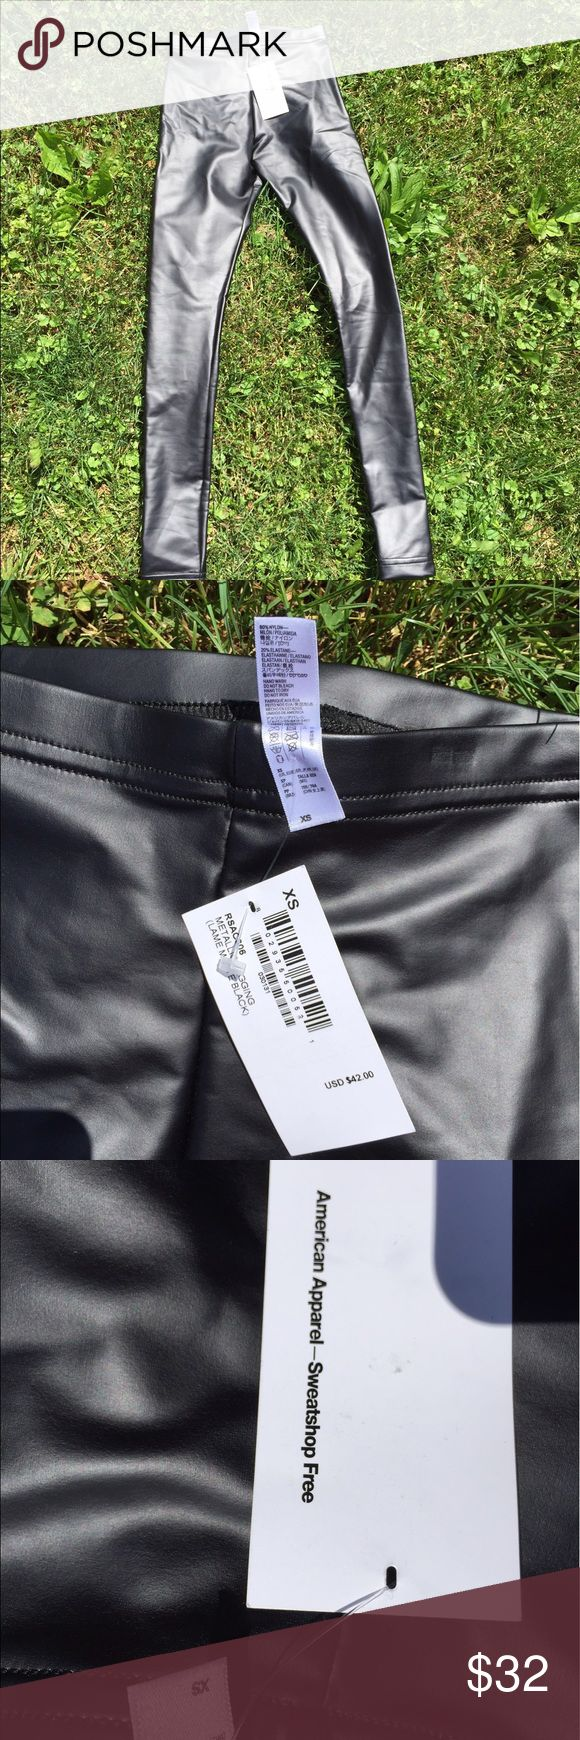 American Apparel Metallic Leggings Matte Black NEW Size XS. New with tags. 80% nylon 20% elastic. Be sure to view the other items in our closet. We offer  women's, Mens and kids items in a variety of sizes. Bundle and save!! Thank you for viewing our item!! American Apparel Pants Leggings